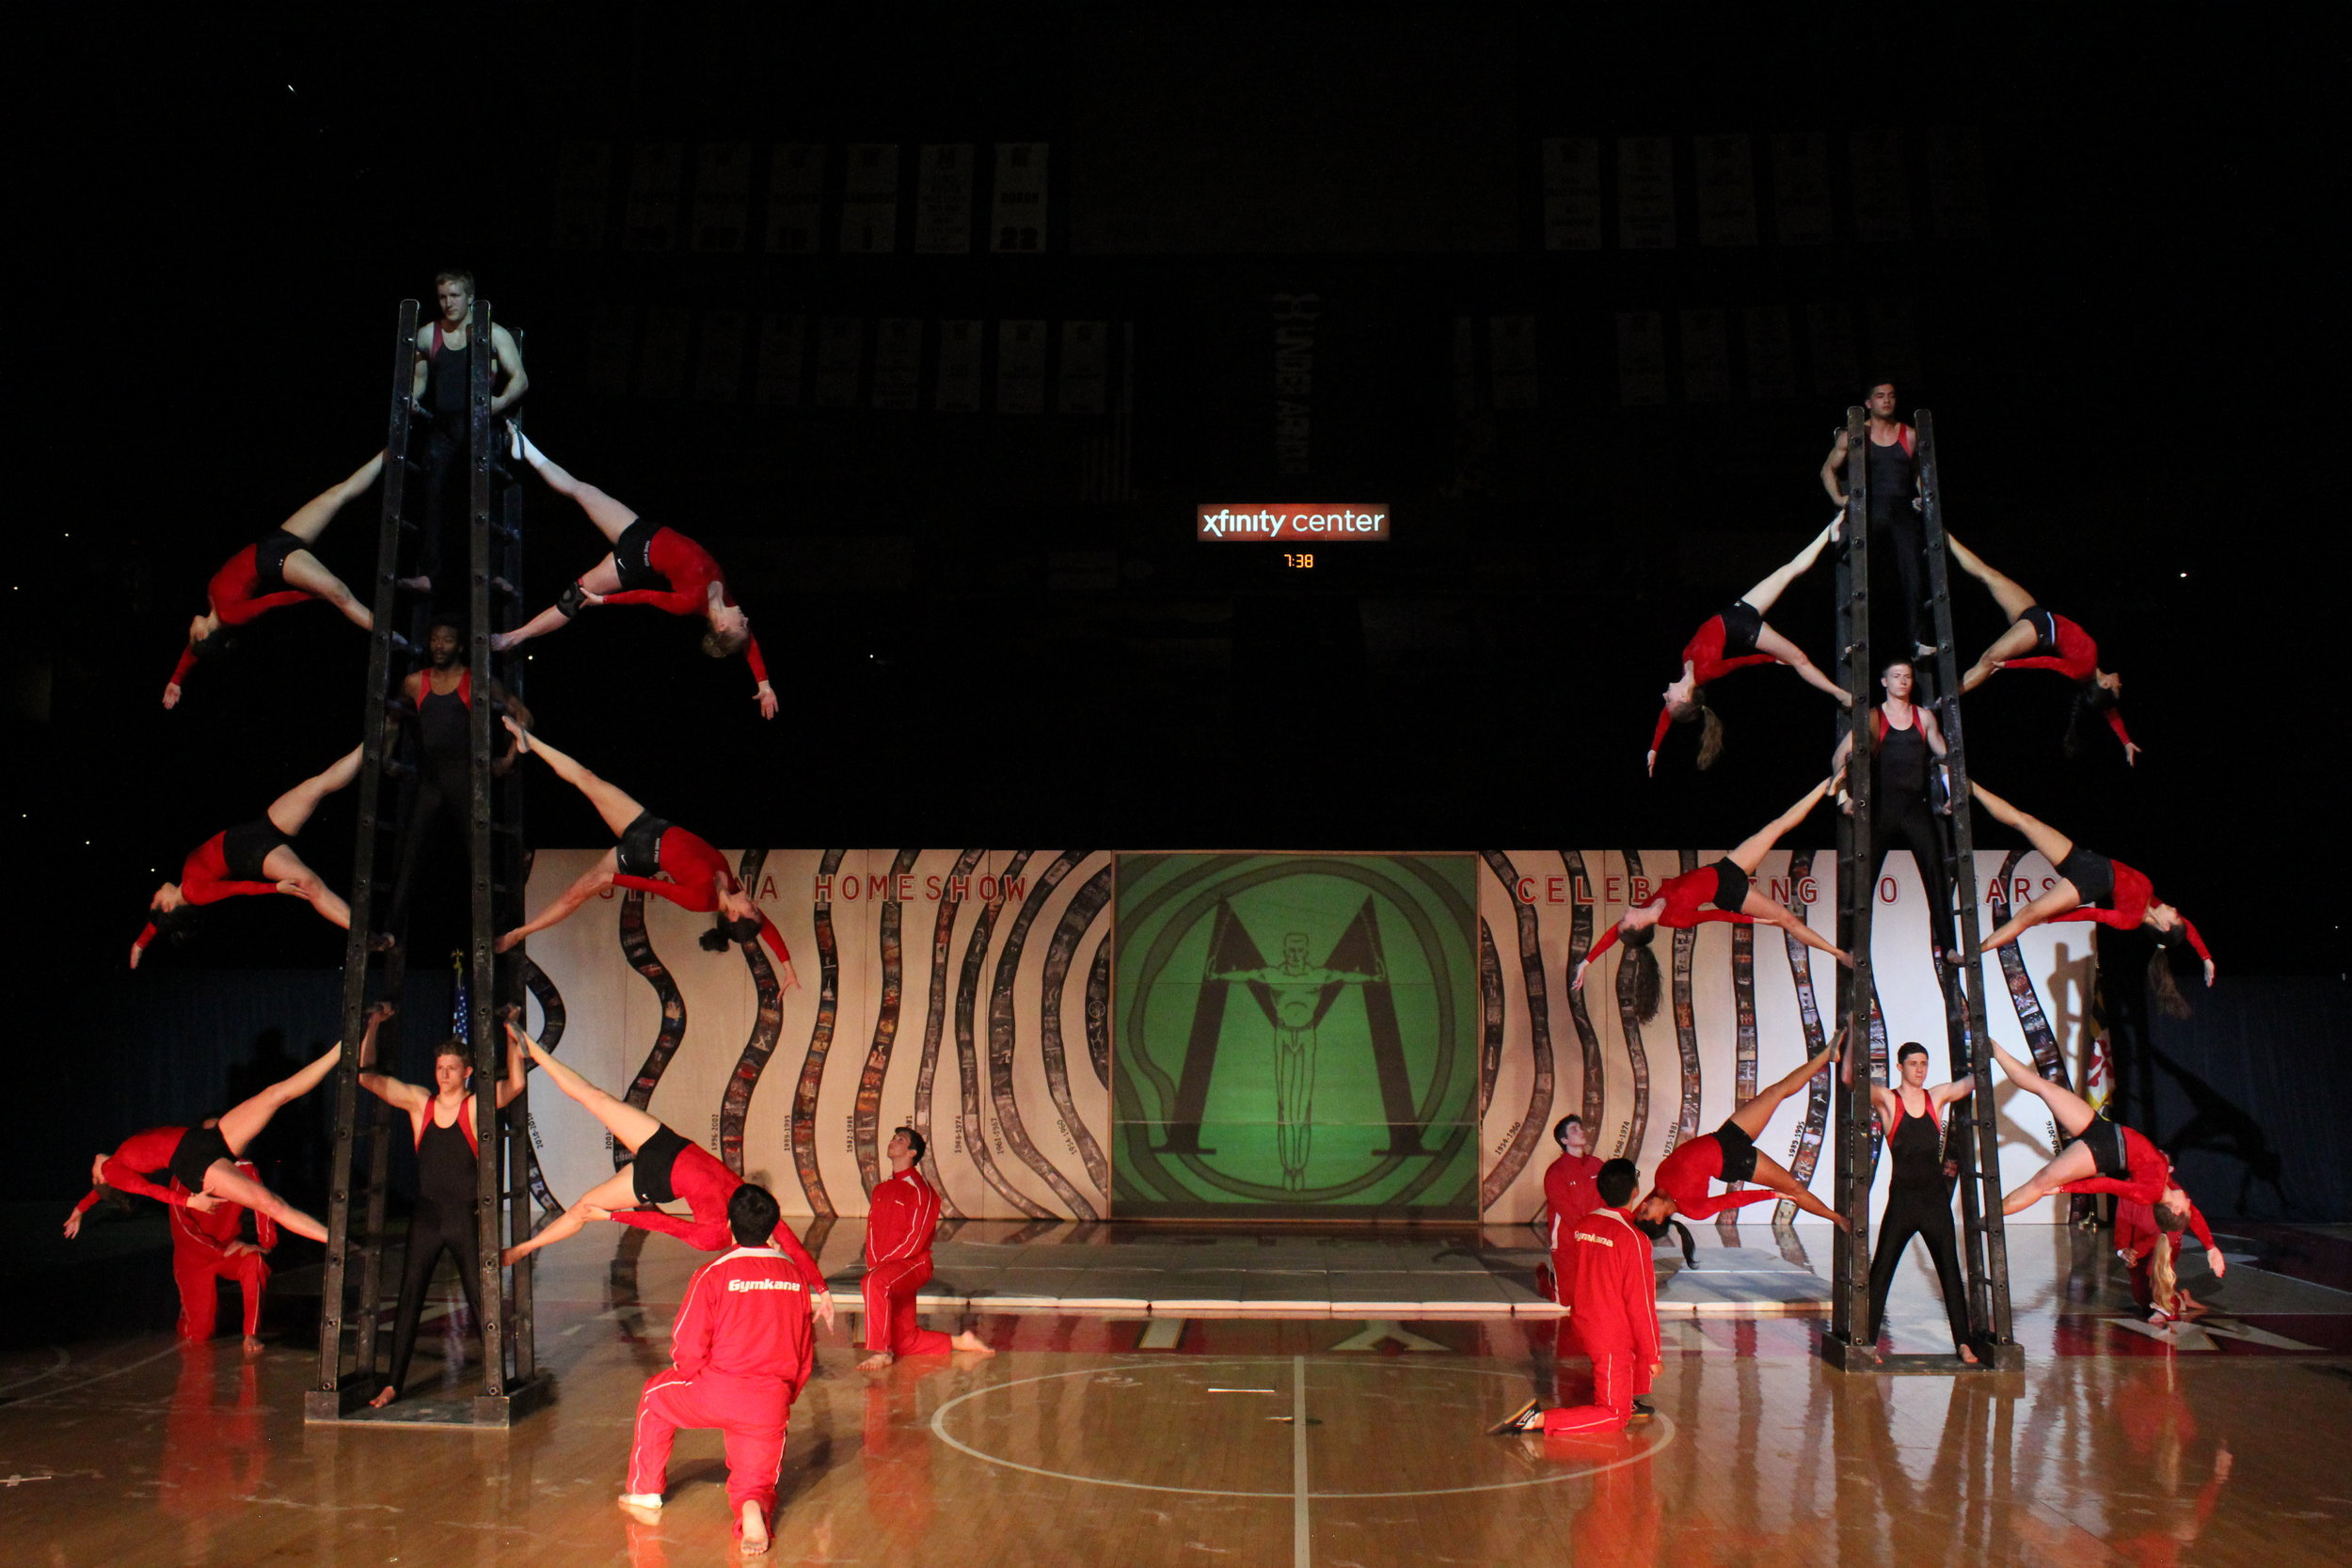 The Ladders act performed at the 70th Anniversary Home Show in 2017